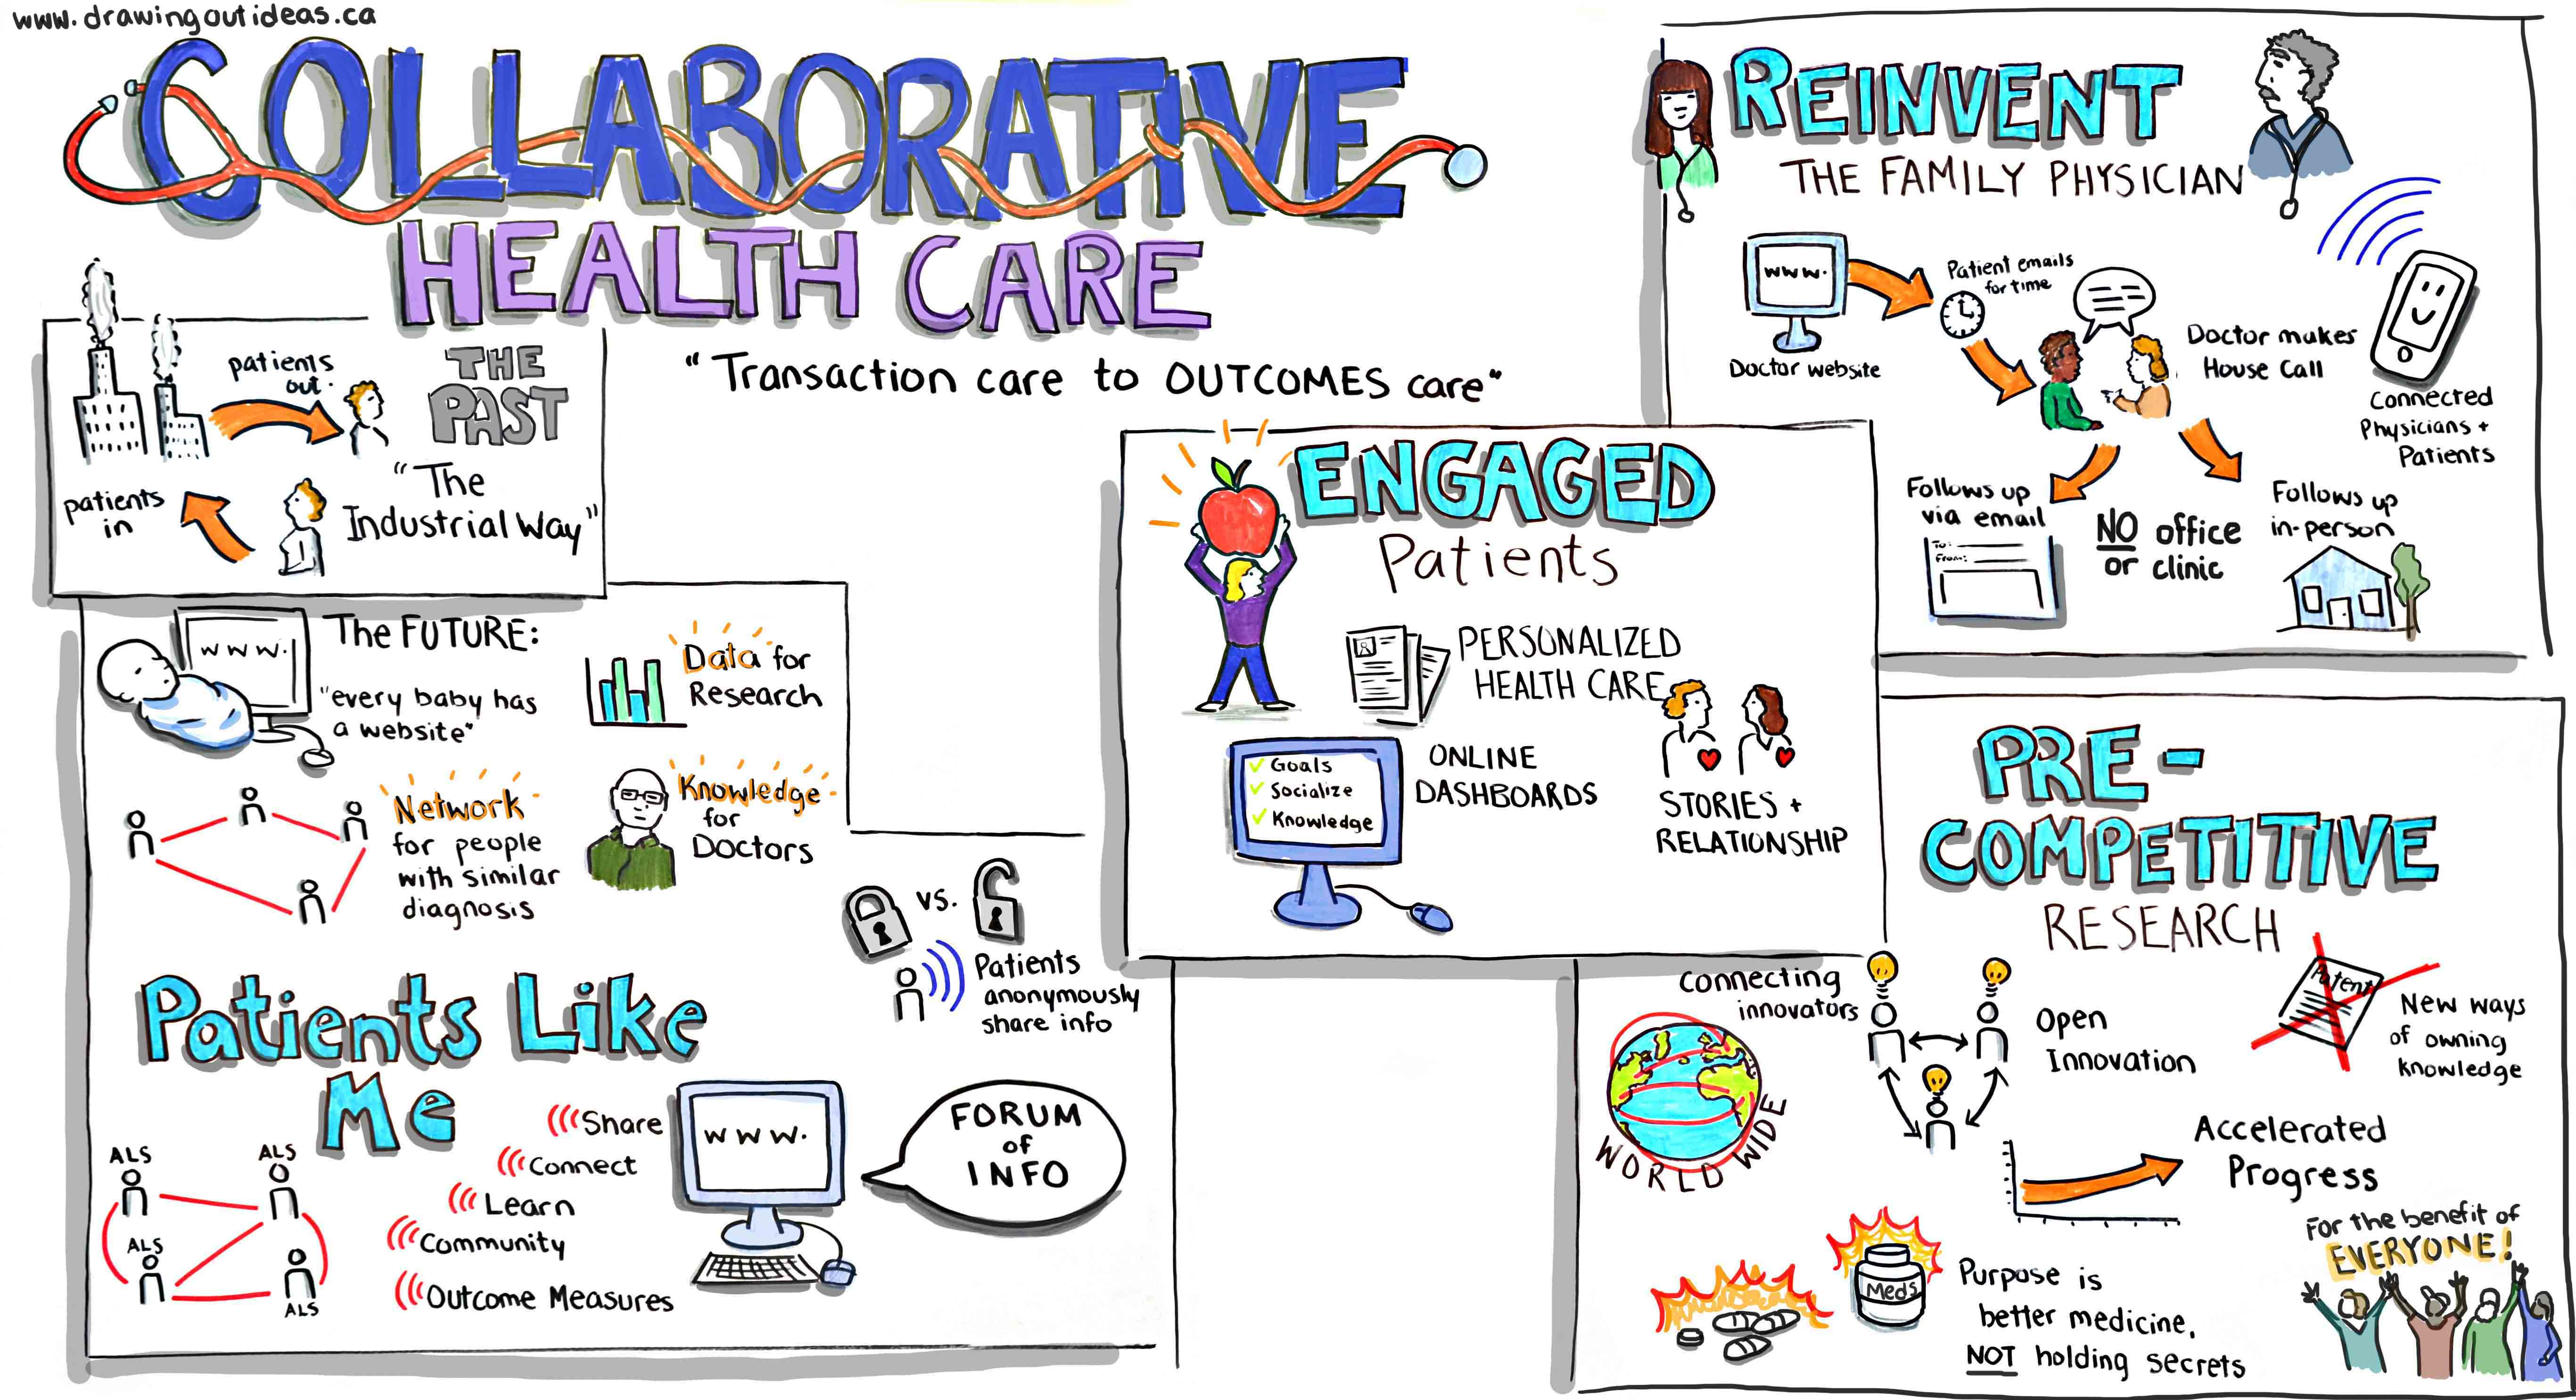 collaboration in health care Collaborative healthcare strategies delivers program design promoting better health, providing better care and reducing healthcare costs practical and efficient in improving care over time and across settings, without exclusive adherence to any specific model.